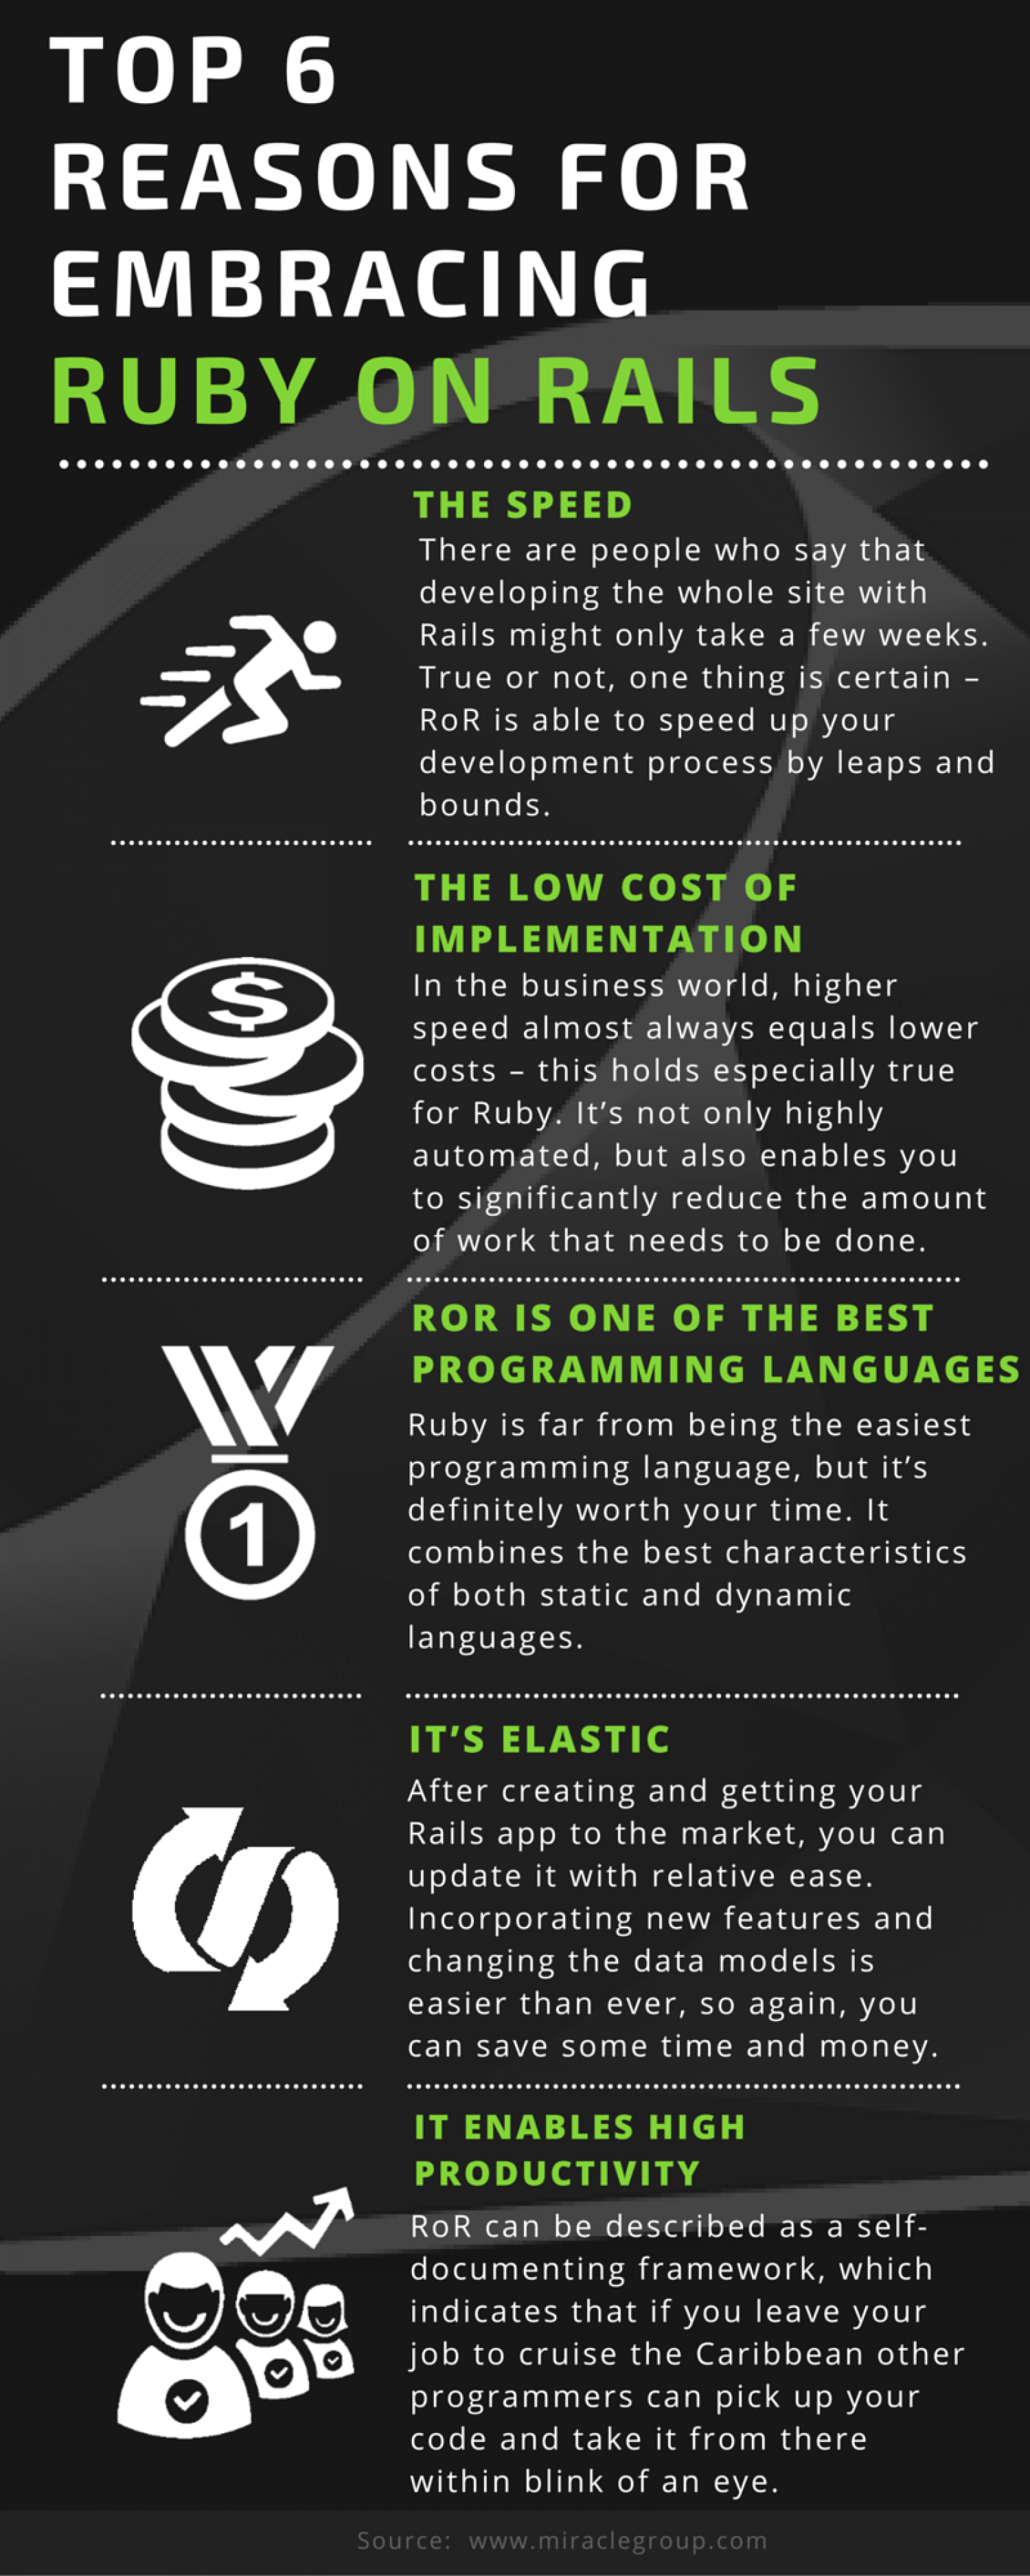 TOP 6 REASONS FOR EMBRACING RUBY ON RAILS Infographic